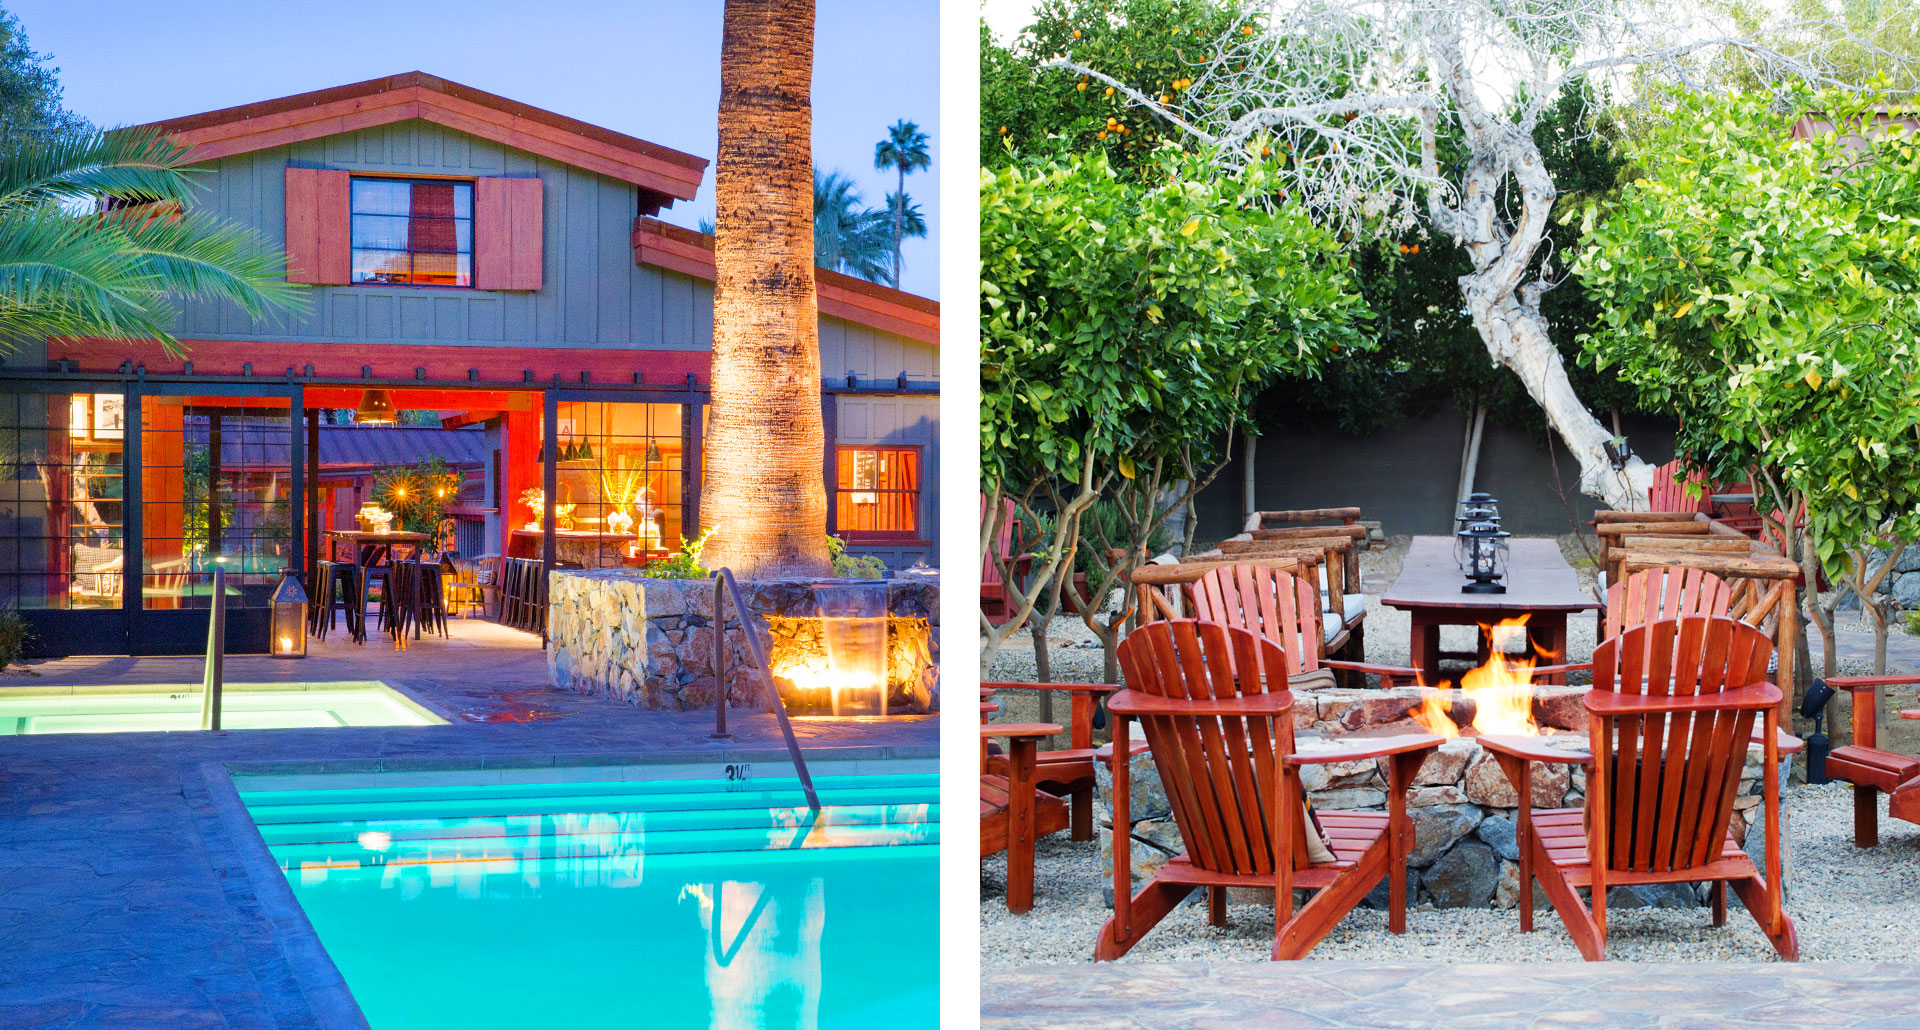 Sparrows Lodge - boutique hotel in Palm Springs